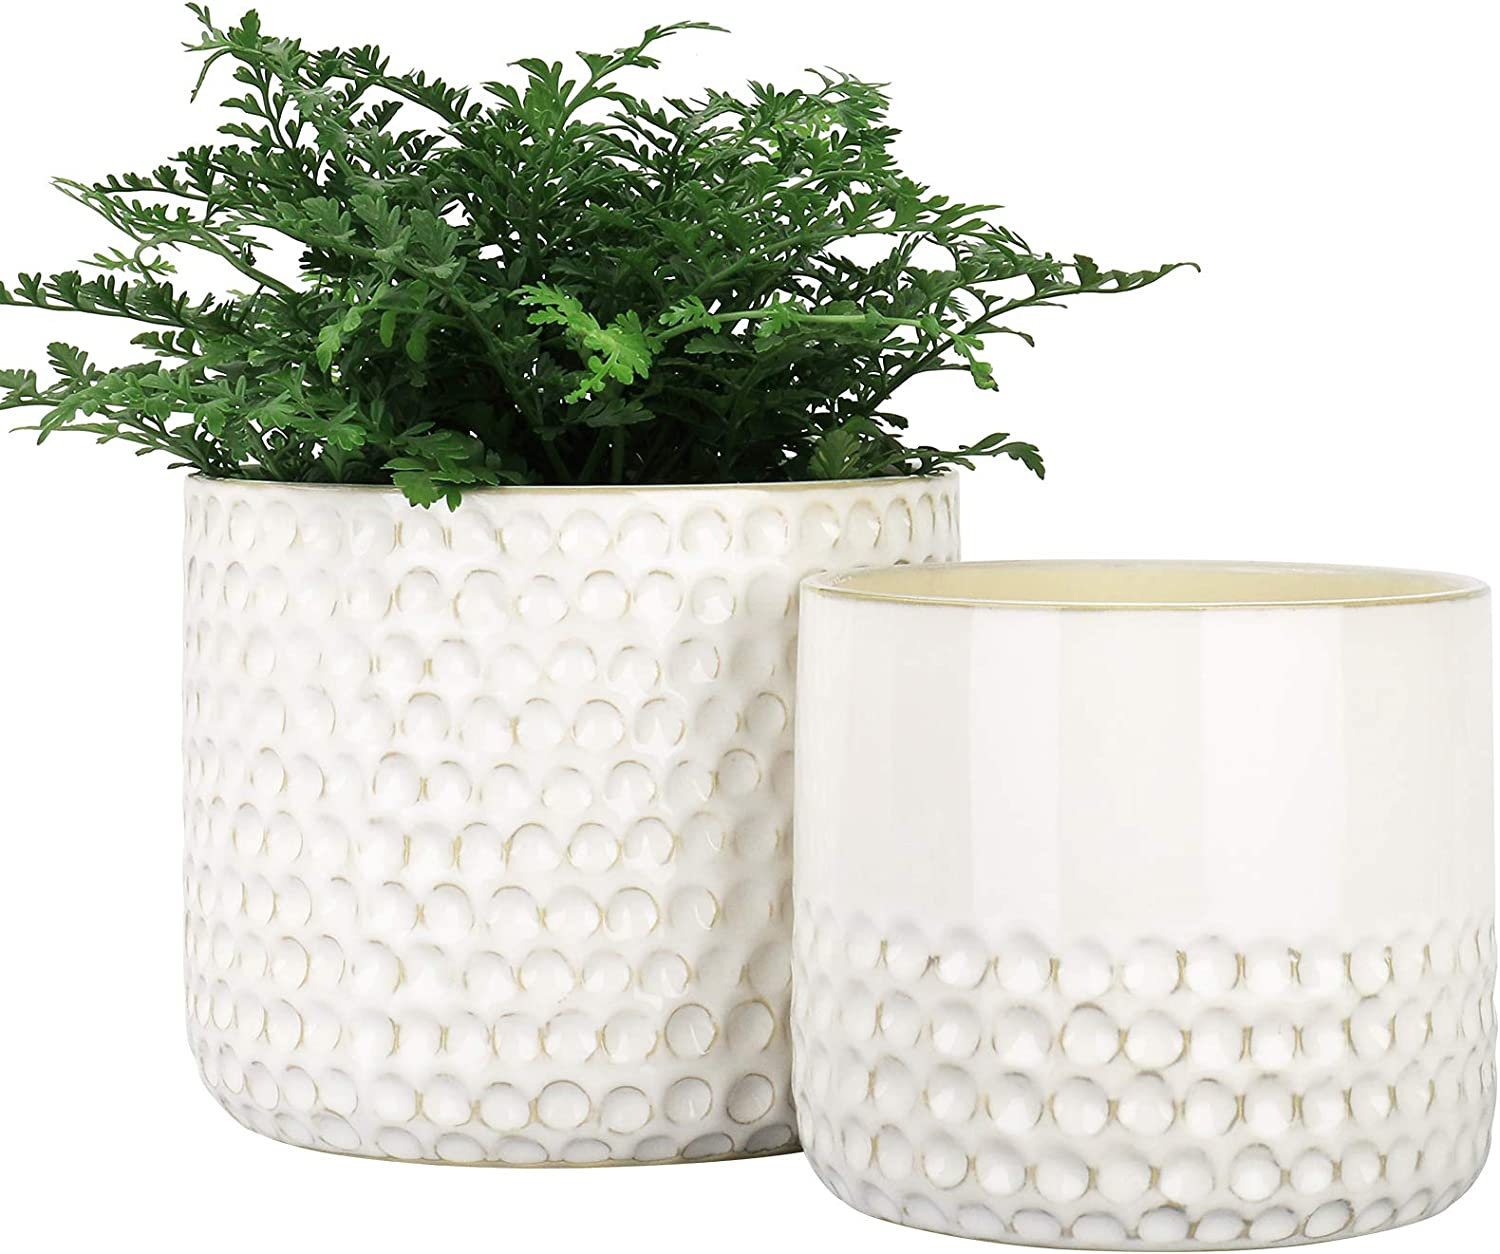 Amazon Com La Jolie Muse Ceramic Planter Flower Plant Pots 6 7 5 5 Inch Concave Dot Patterned Cylinder Flower Pot With Drain Hole For Indoor Set Of 2 Ivory Garden Outdoor